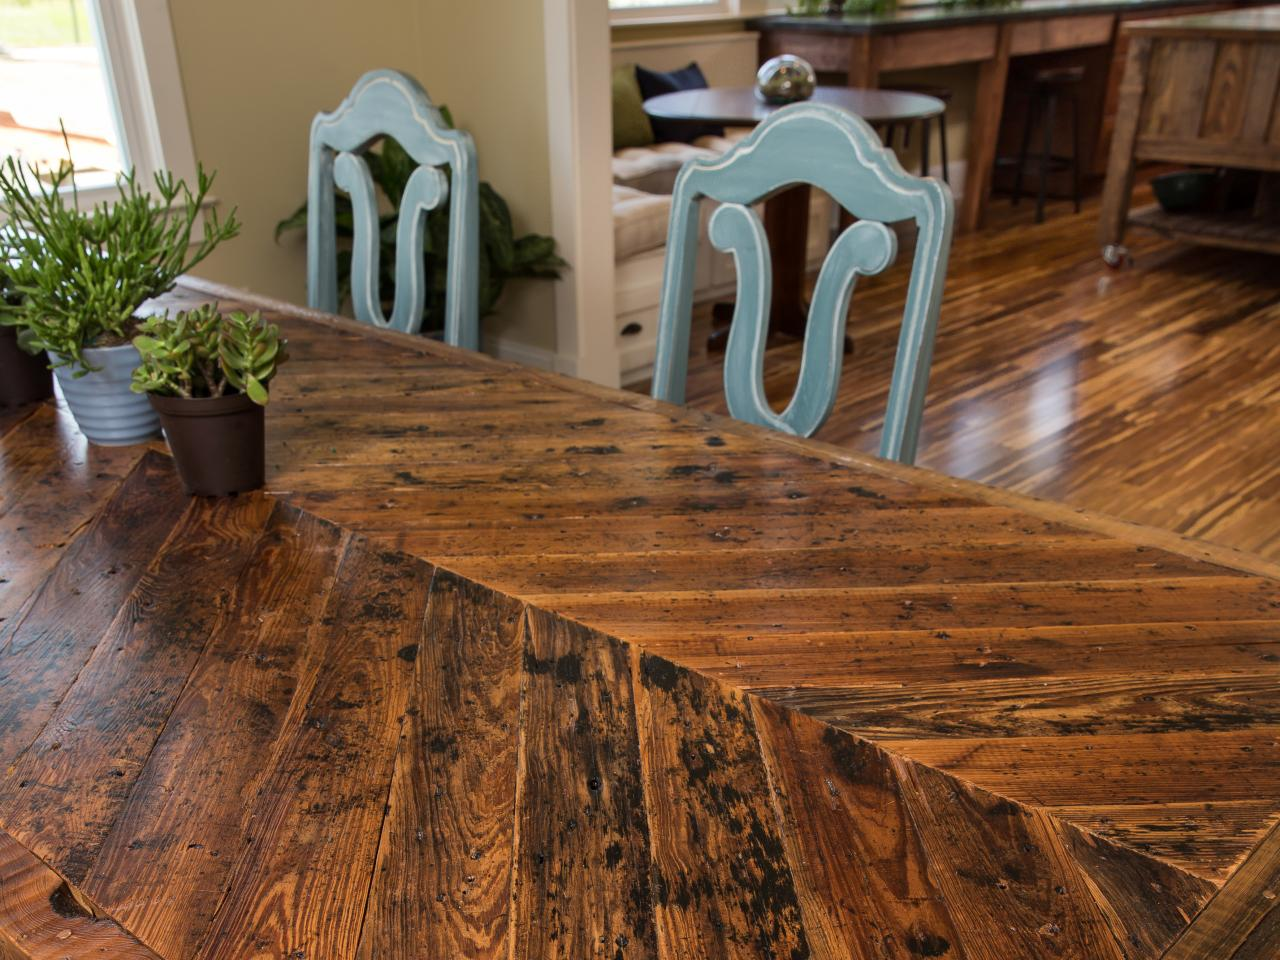 How To Build a Dining Table With Reclaimed Materials how tos DIY